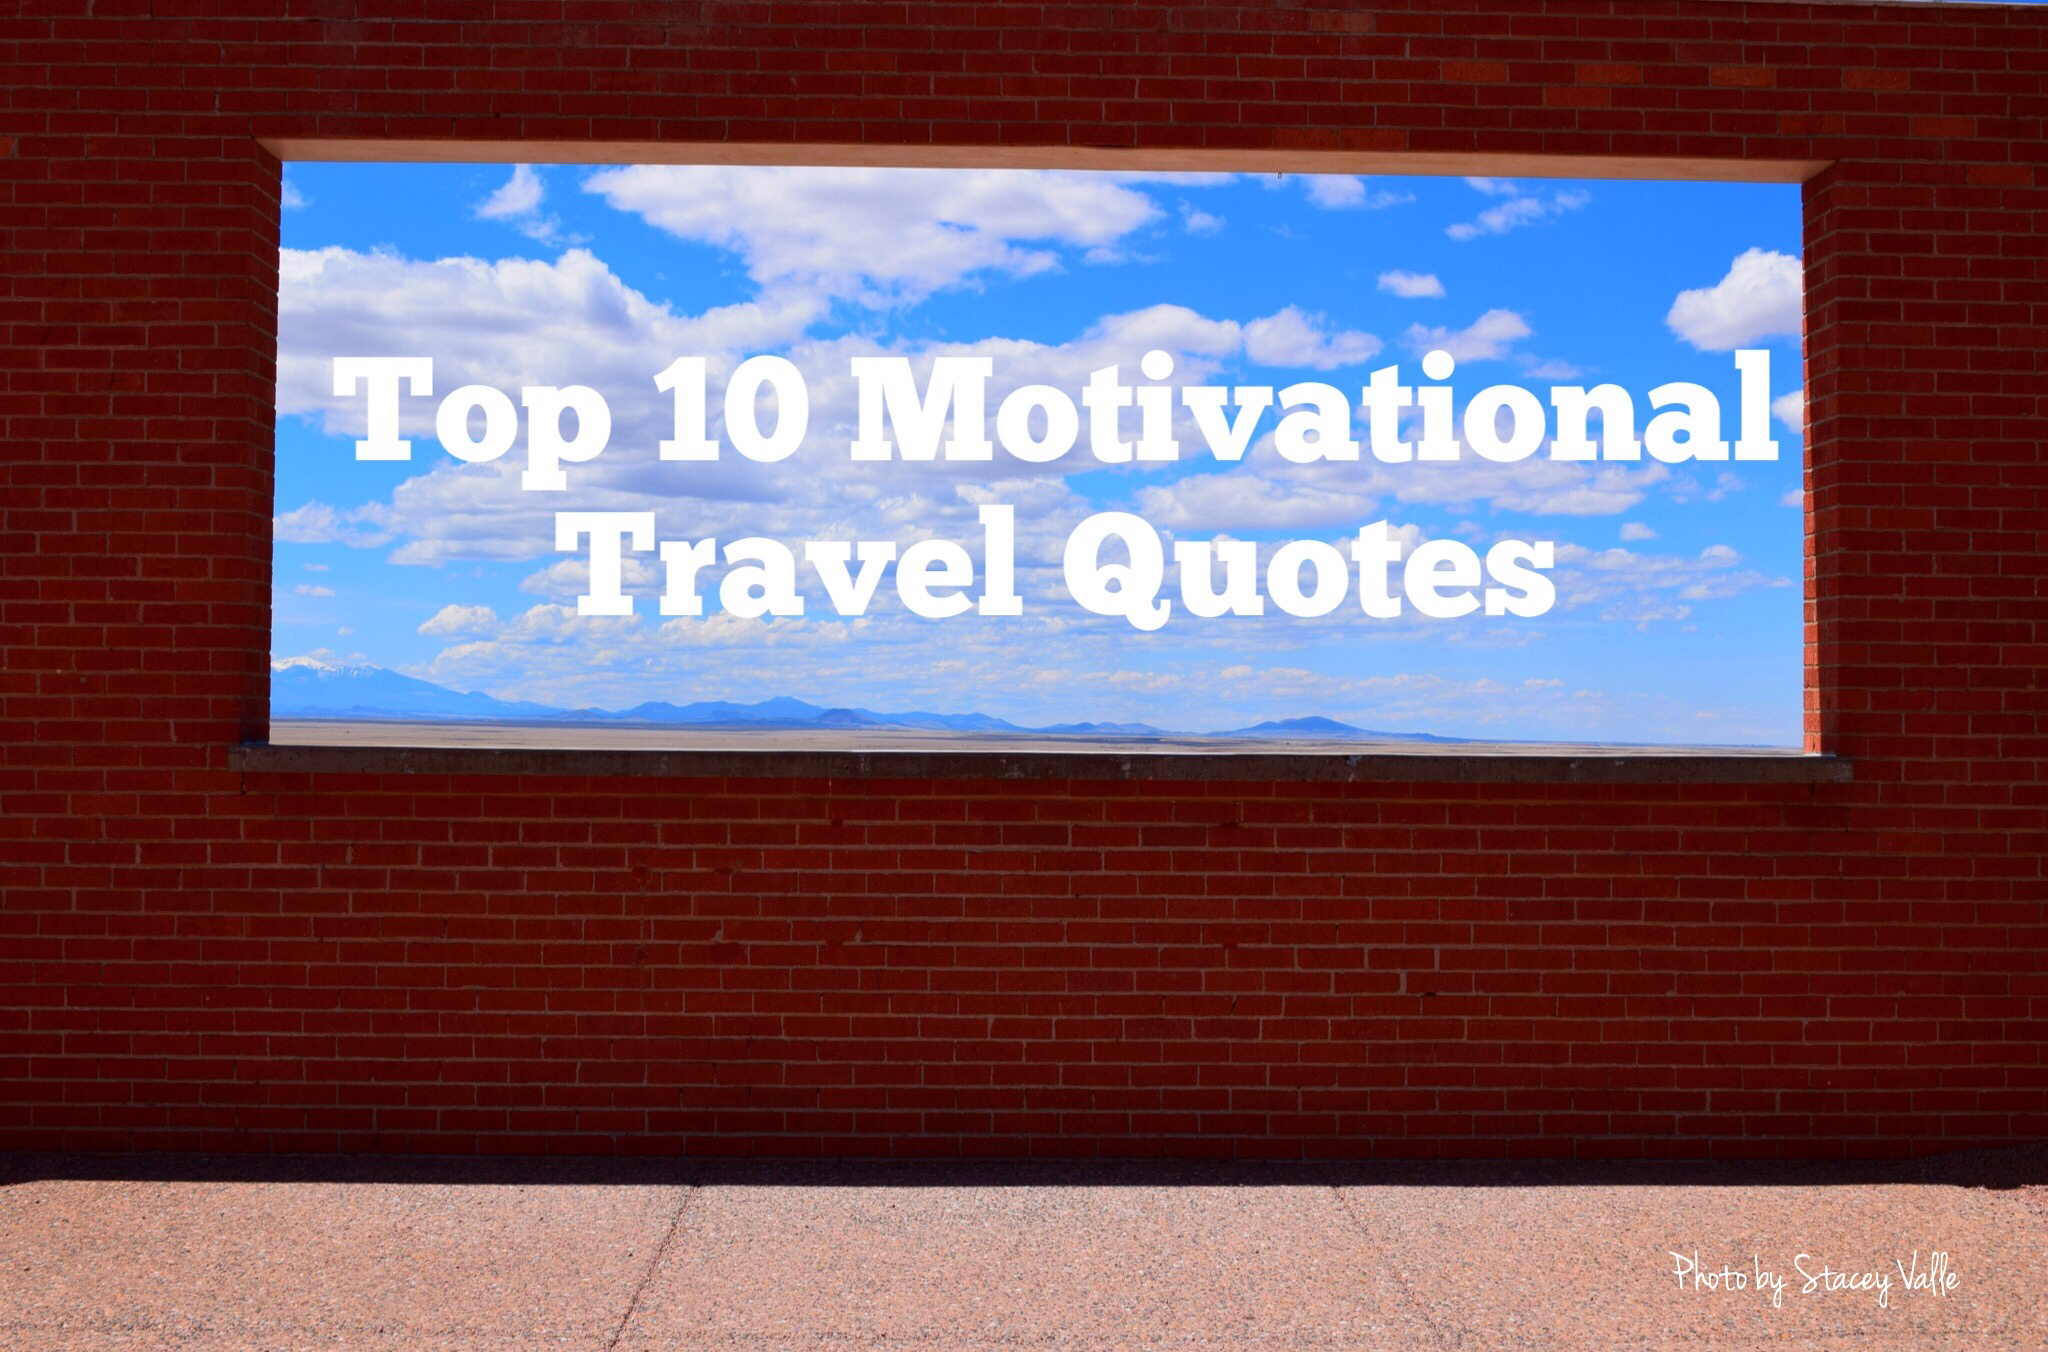 Top 10 Motivational Travel Quotes